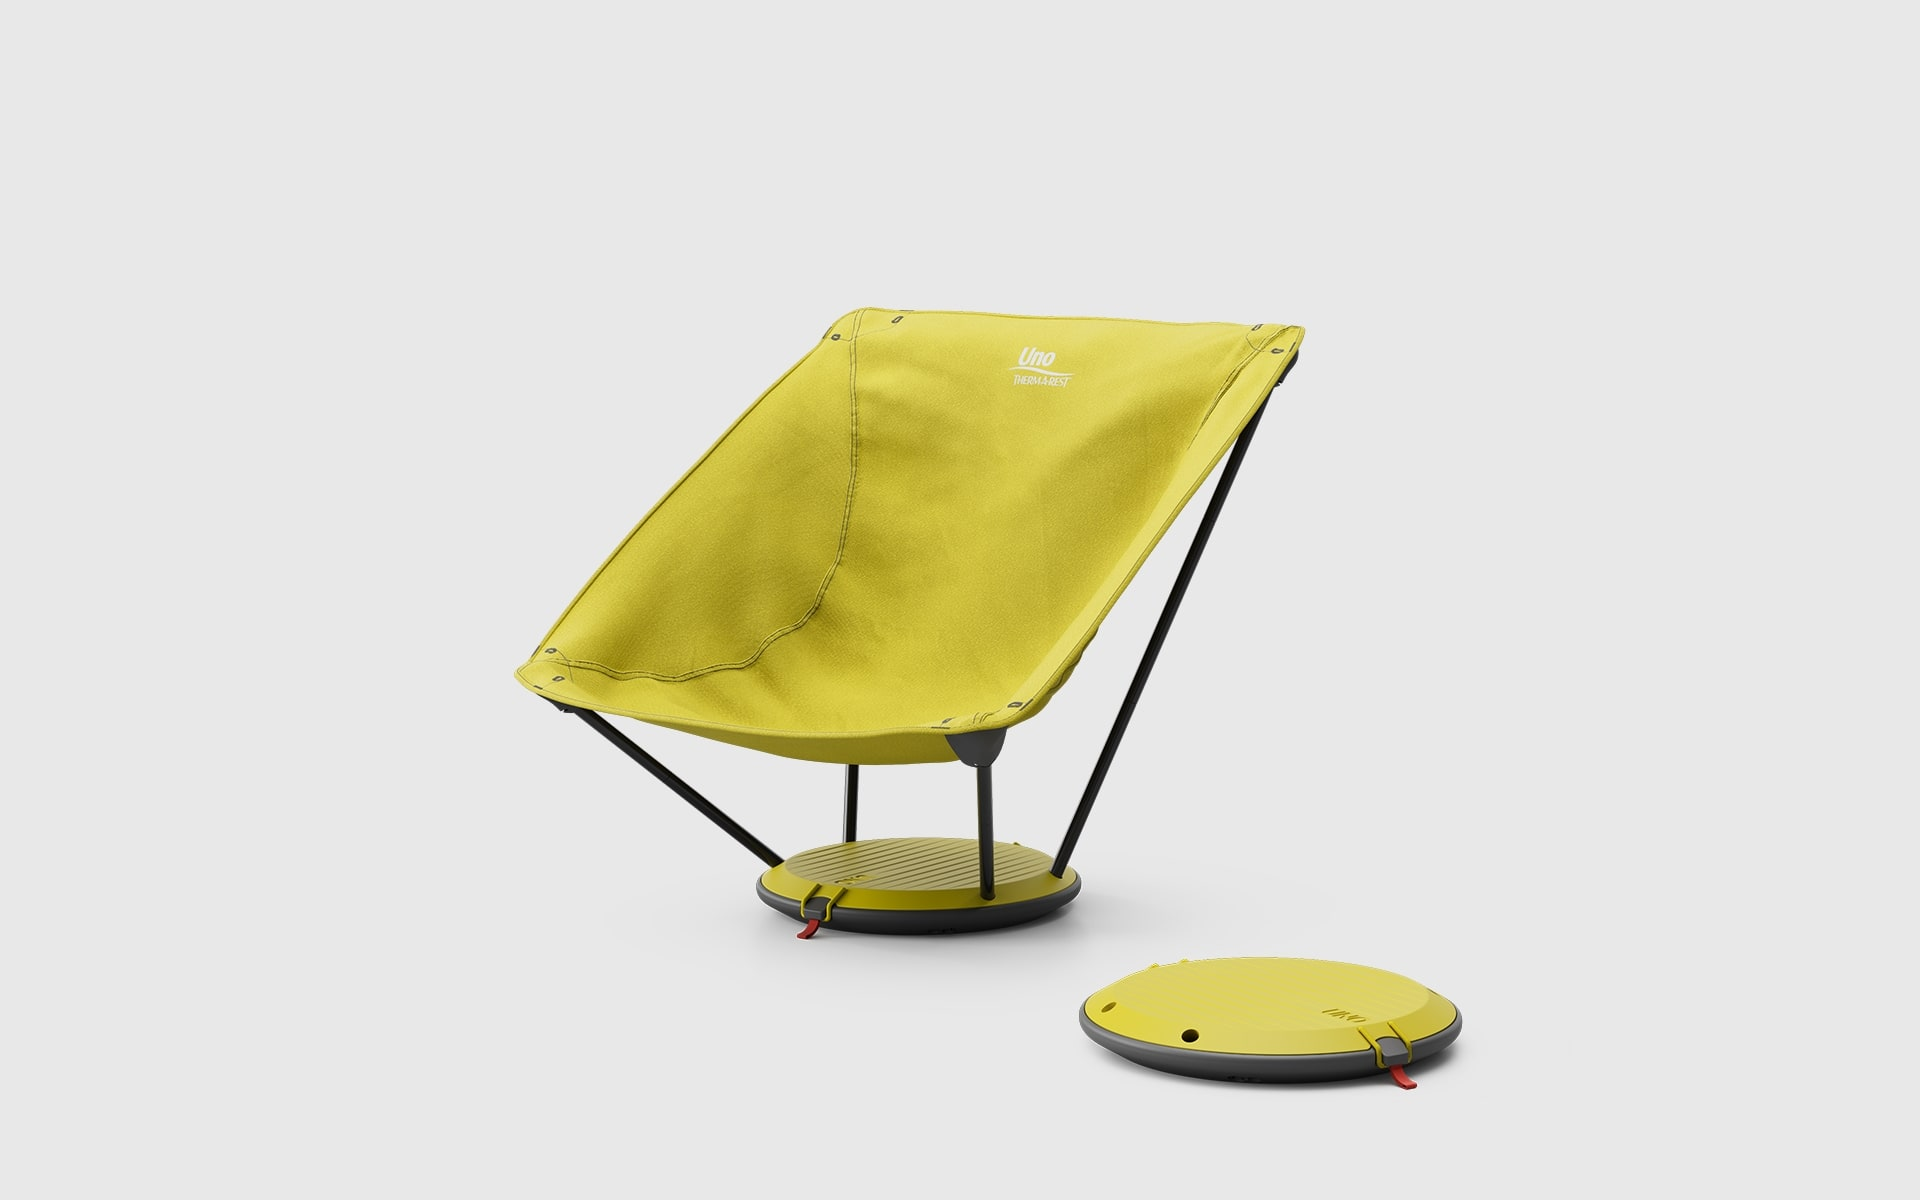 Yellow Therm-a-Rest Uno outdoor chair by ITO Design, next to it a second Uno outdoor chair packed into its own disc shaped base